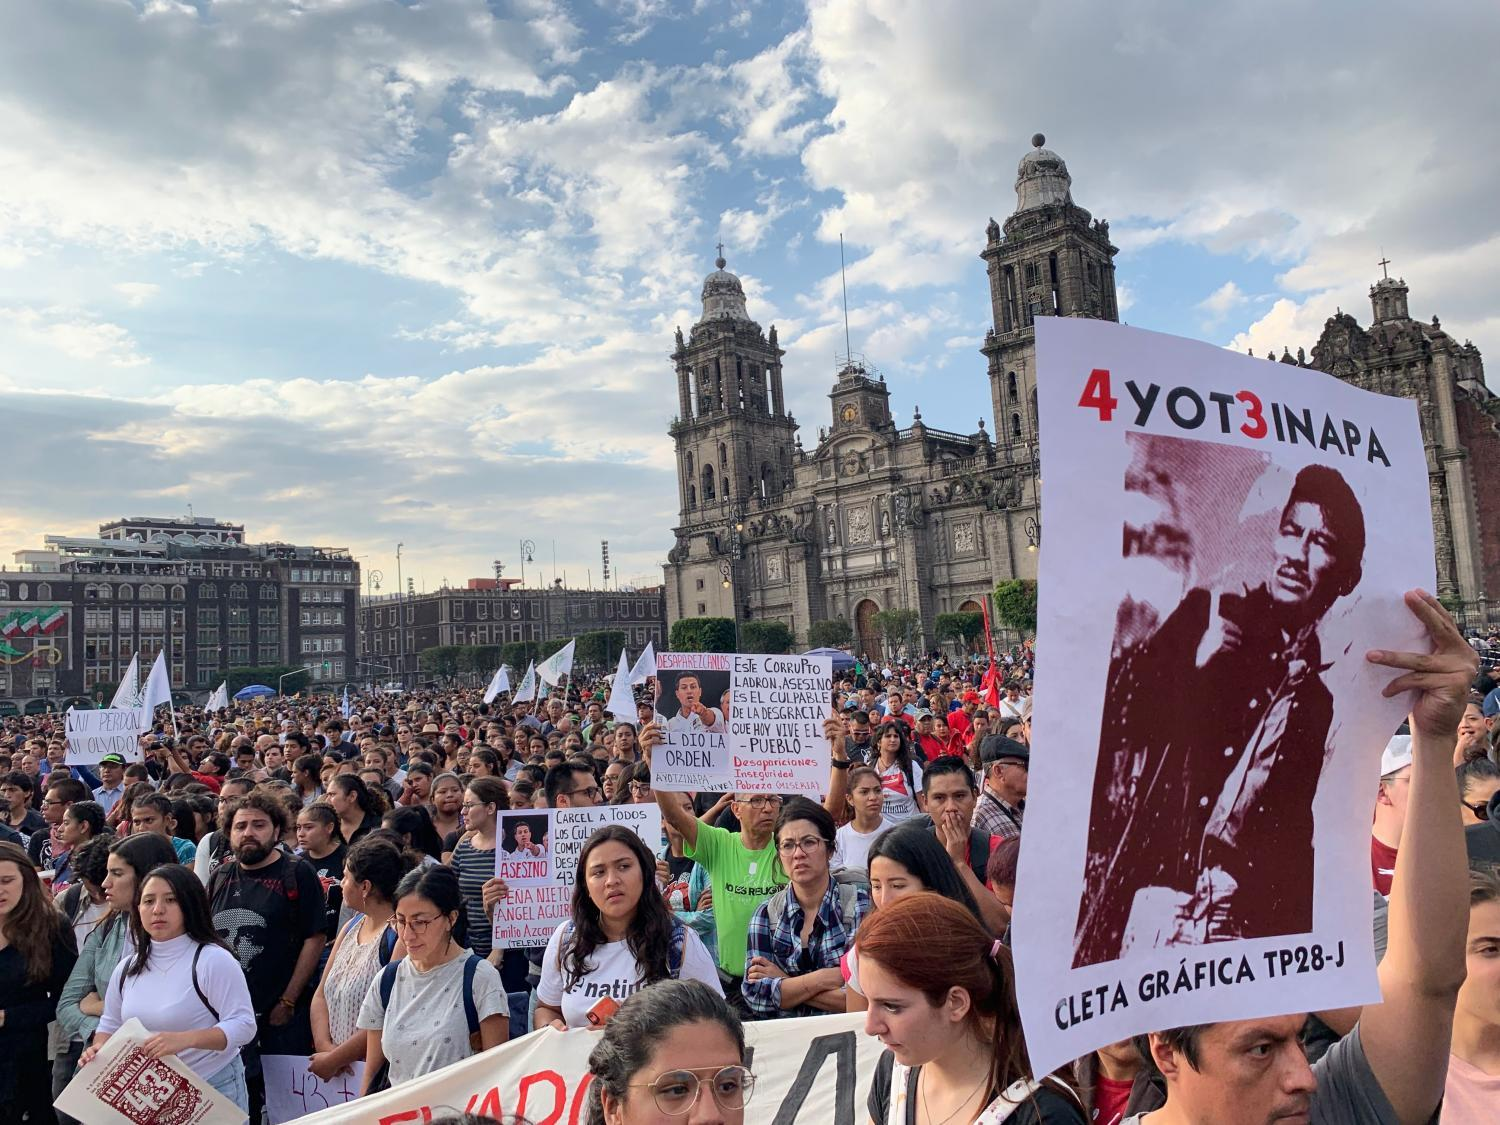 Thousands marched on Mexico City's central square on September 26, demanding answers into the investigation of 43 college students who vanished from the southern state of Guerrero